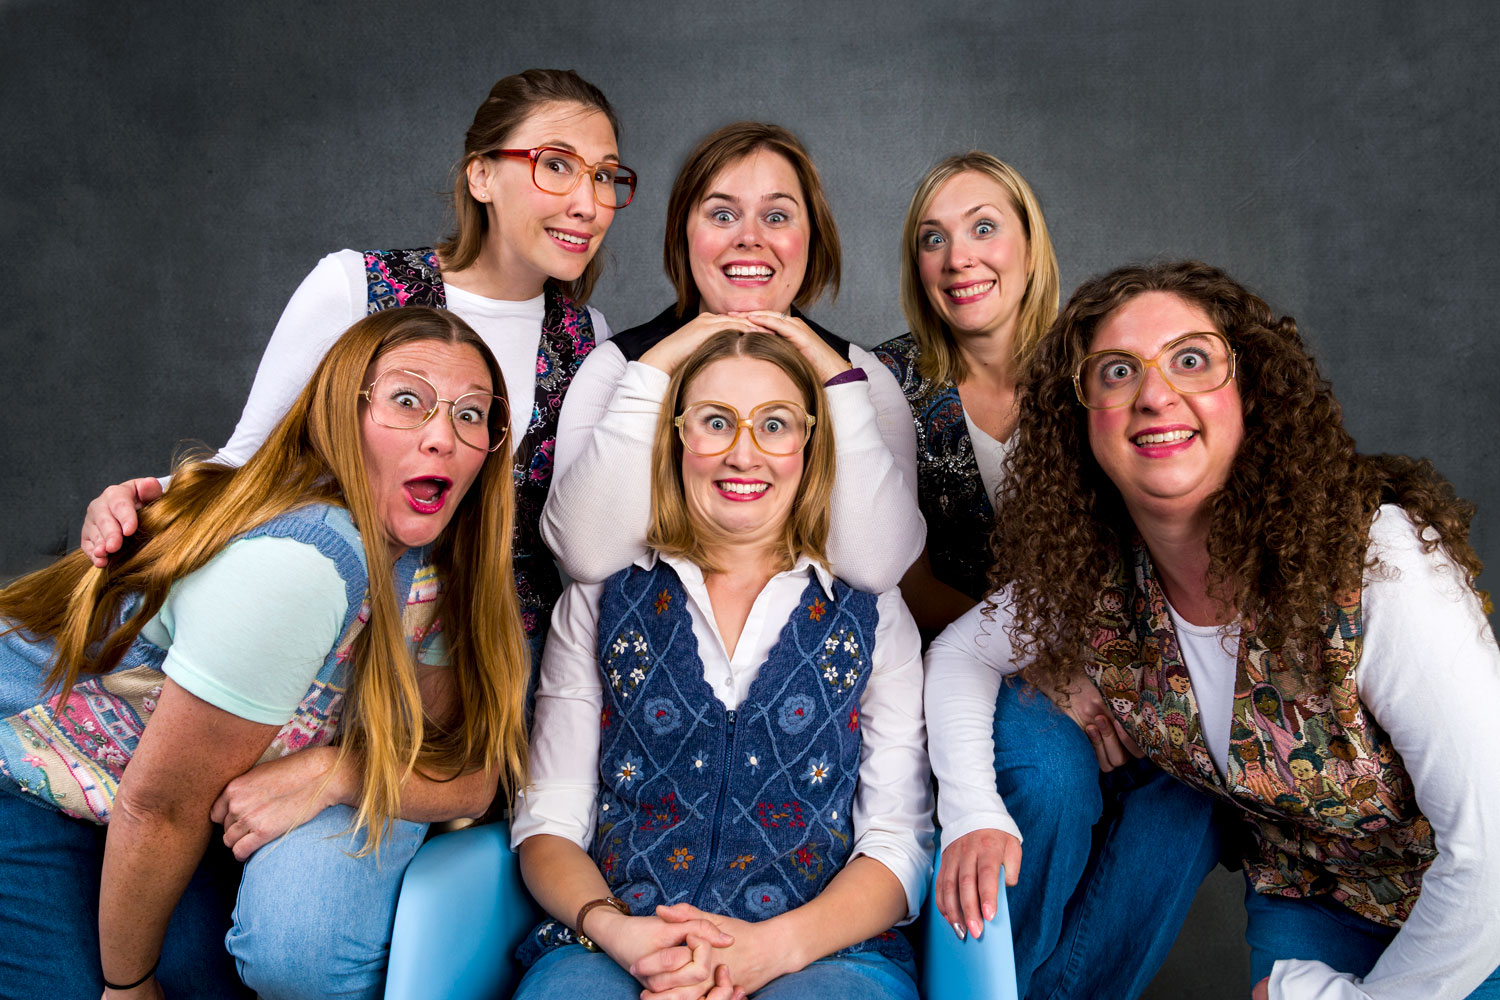 THE RIVETERS  is TIM's OG all-female team! They will take your suggestions, open up their lives to you, then perform long form improv for your amusement and delight! The Riveters is comprised of Catherine Bartlett, Jessica Peck, Jessica Hill, Clare Shelley, Jessica Gregg, and Esther Brilliant.